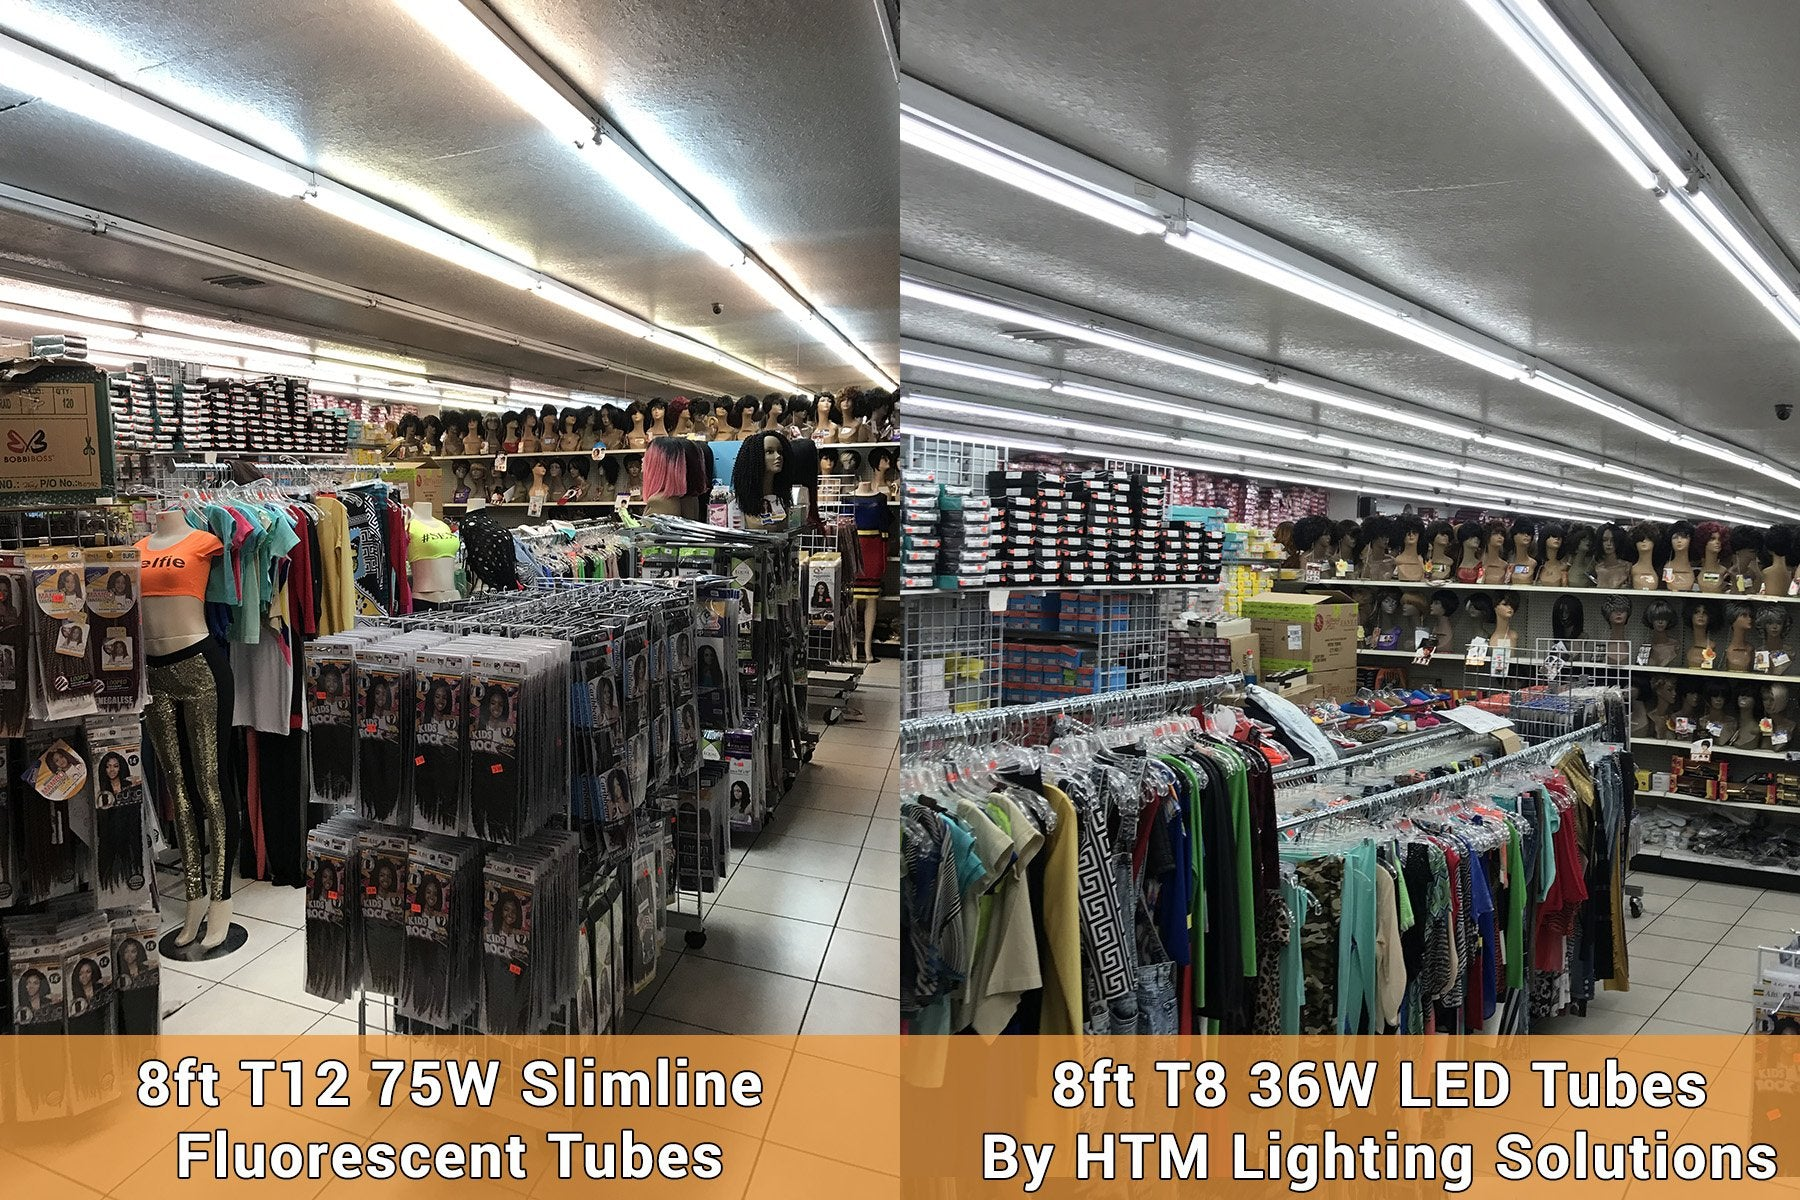 Kathleen Beauty Supply T12 To LED Lighting Retrofit Case Study